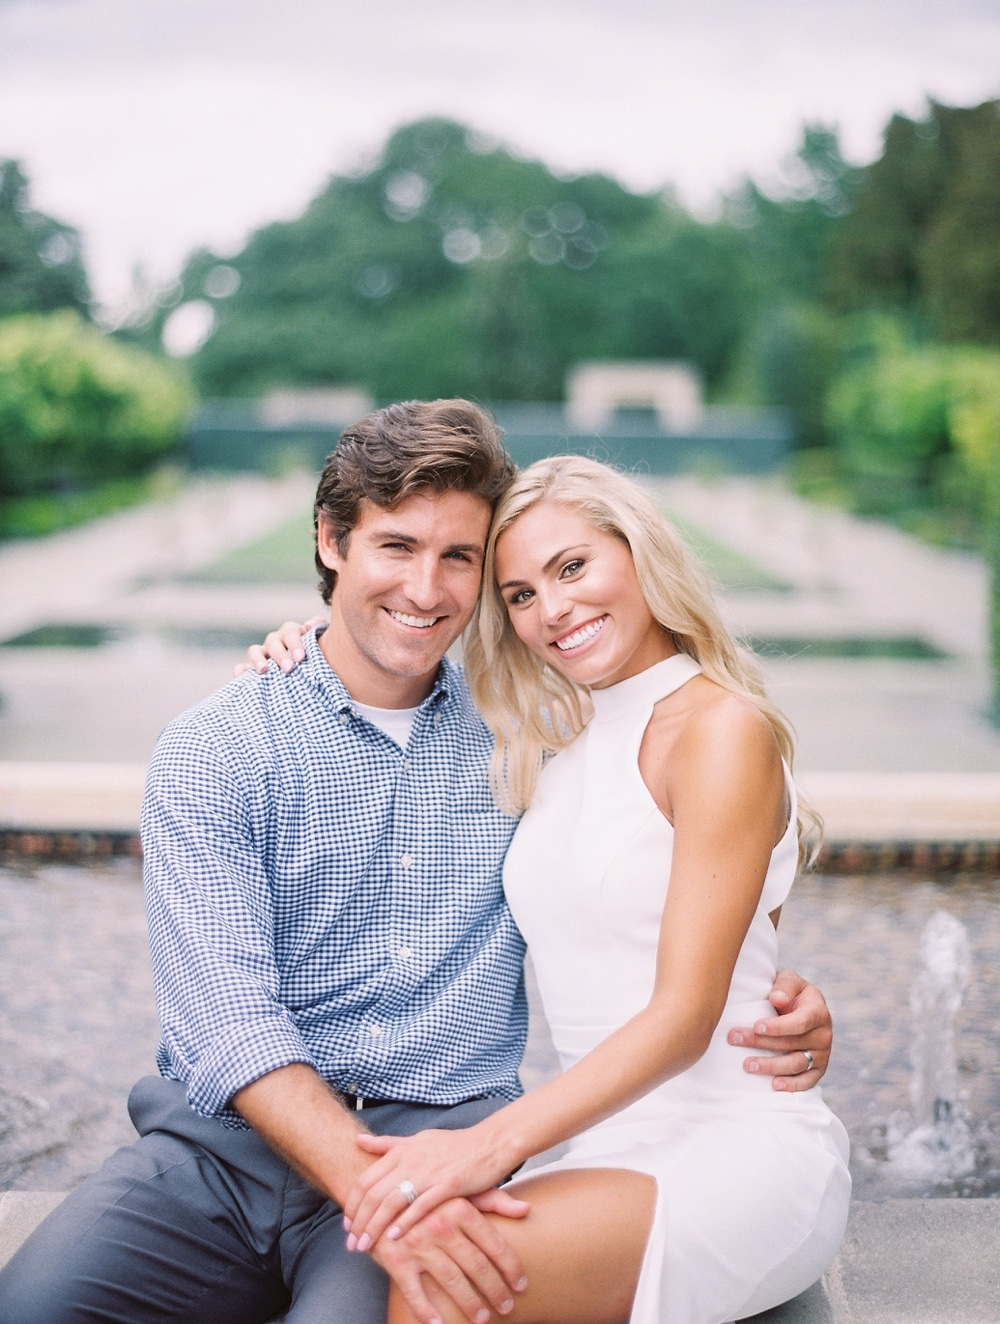 Kristin-La-Voie-Photography-dallas-arboretum-botanical-garden-engagement-photos-43